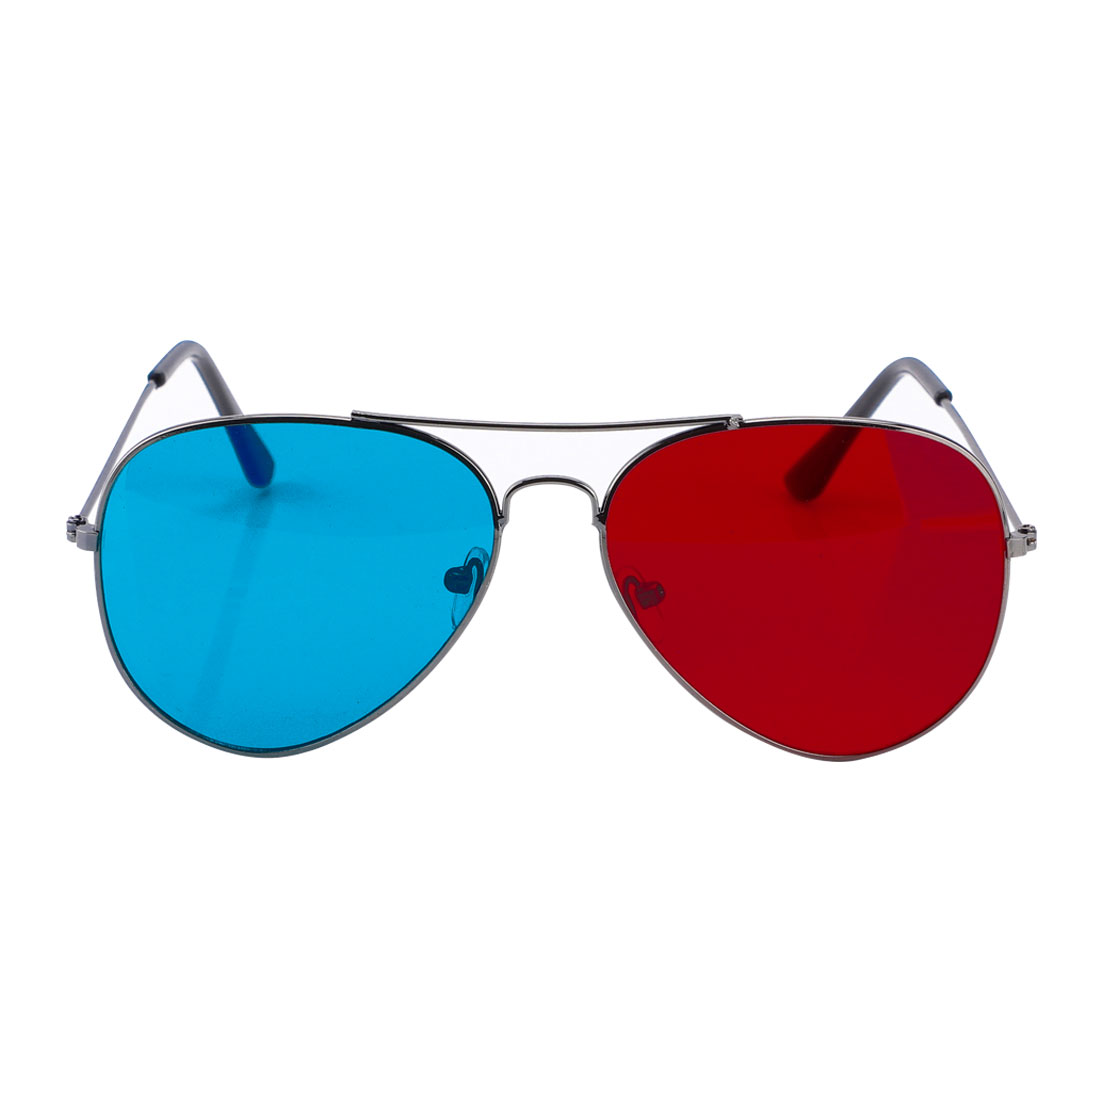 Full Frame Magenta Cyan Lens Anaglyph 3D Movie Game Eyeglasses Glasses